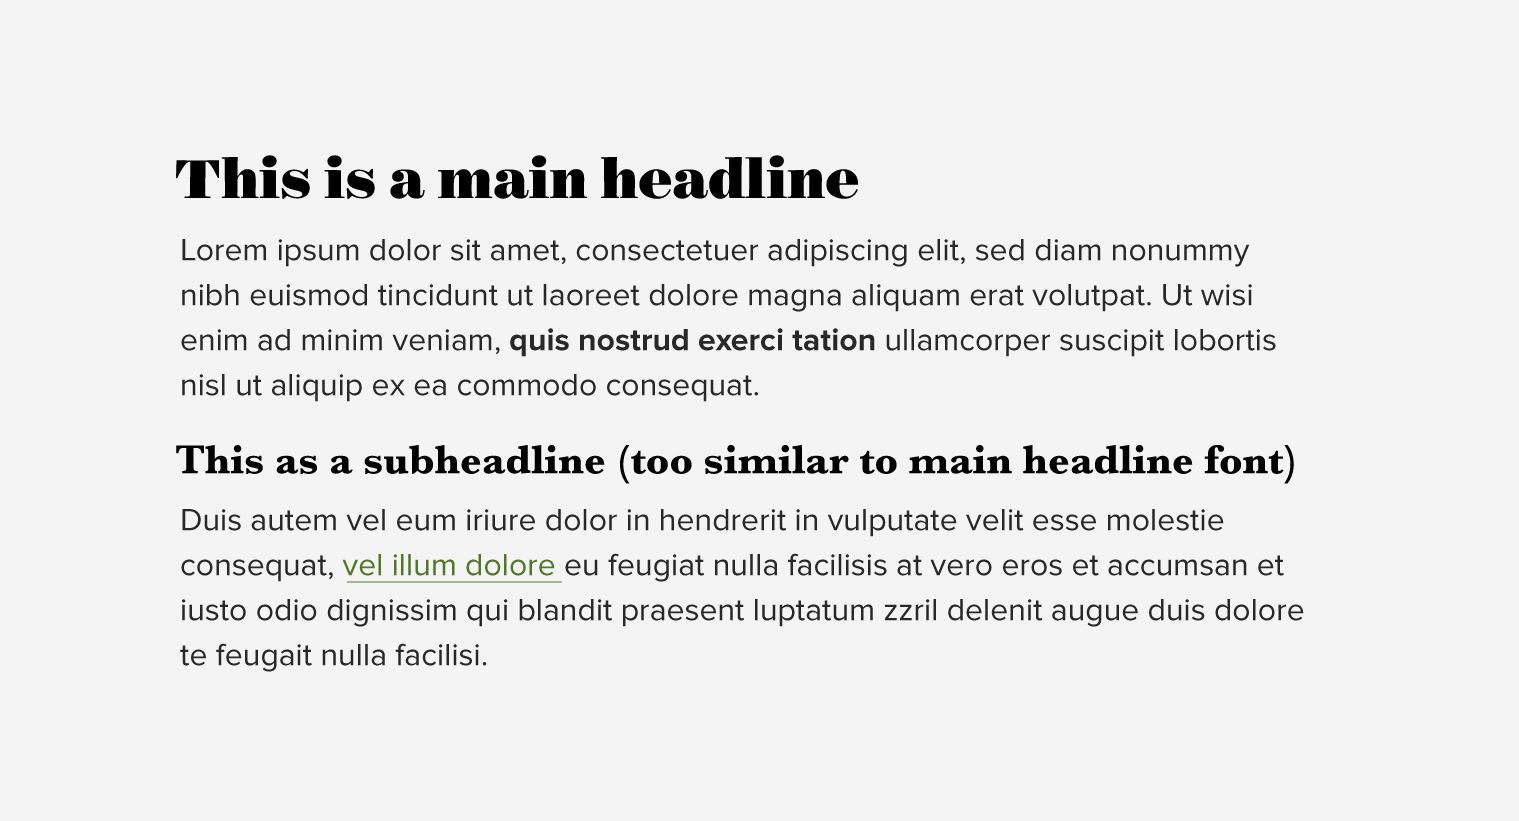 Typographic Contrast - Pair fonts for interest - Pairing Google Fonts